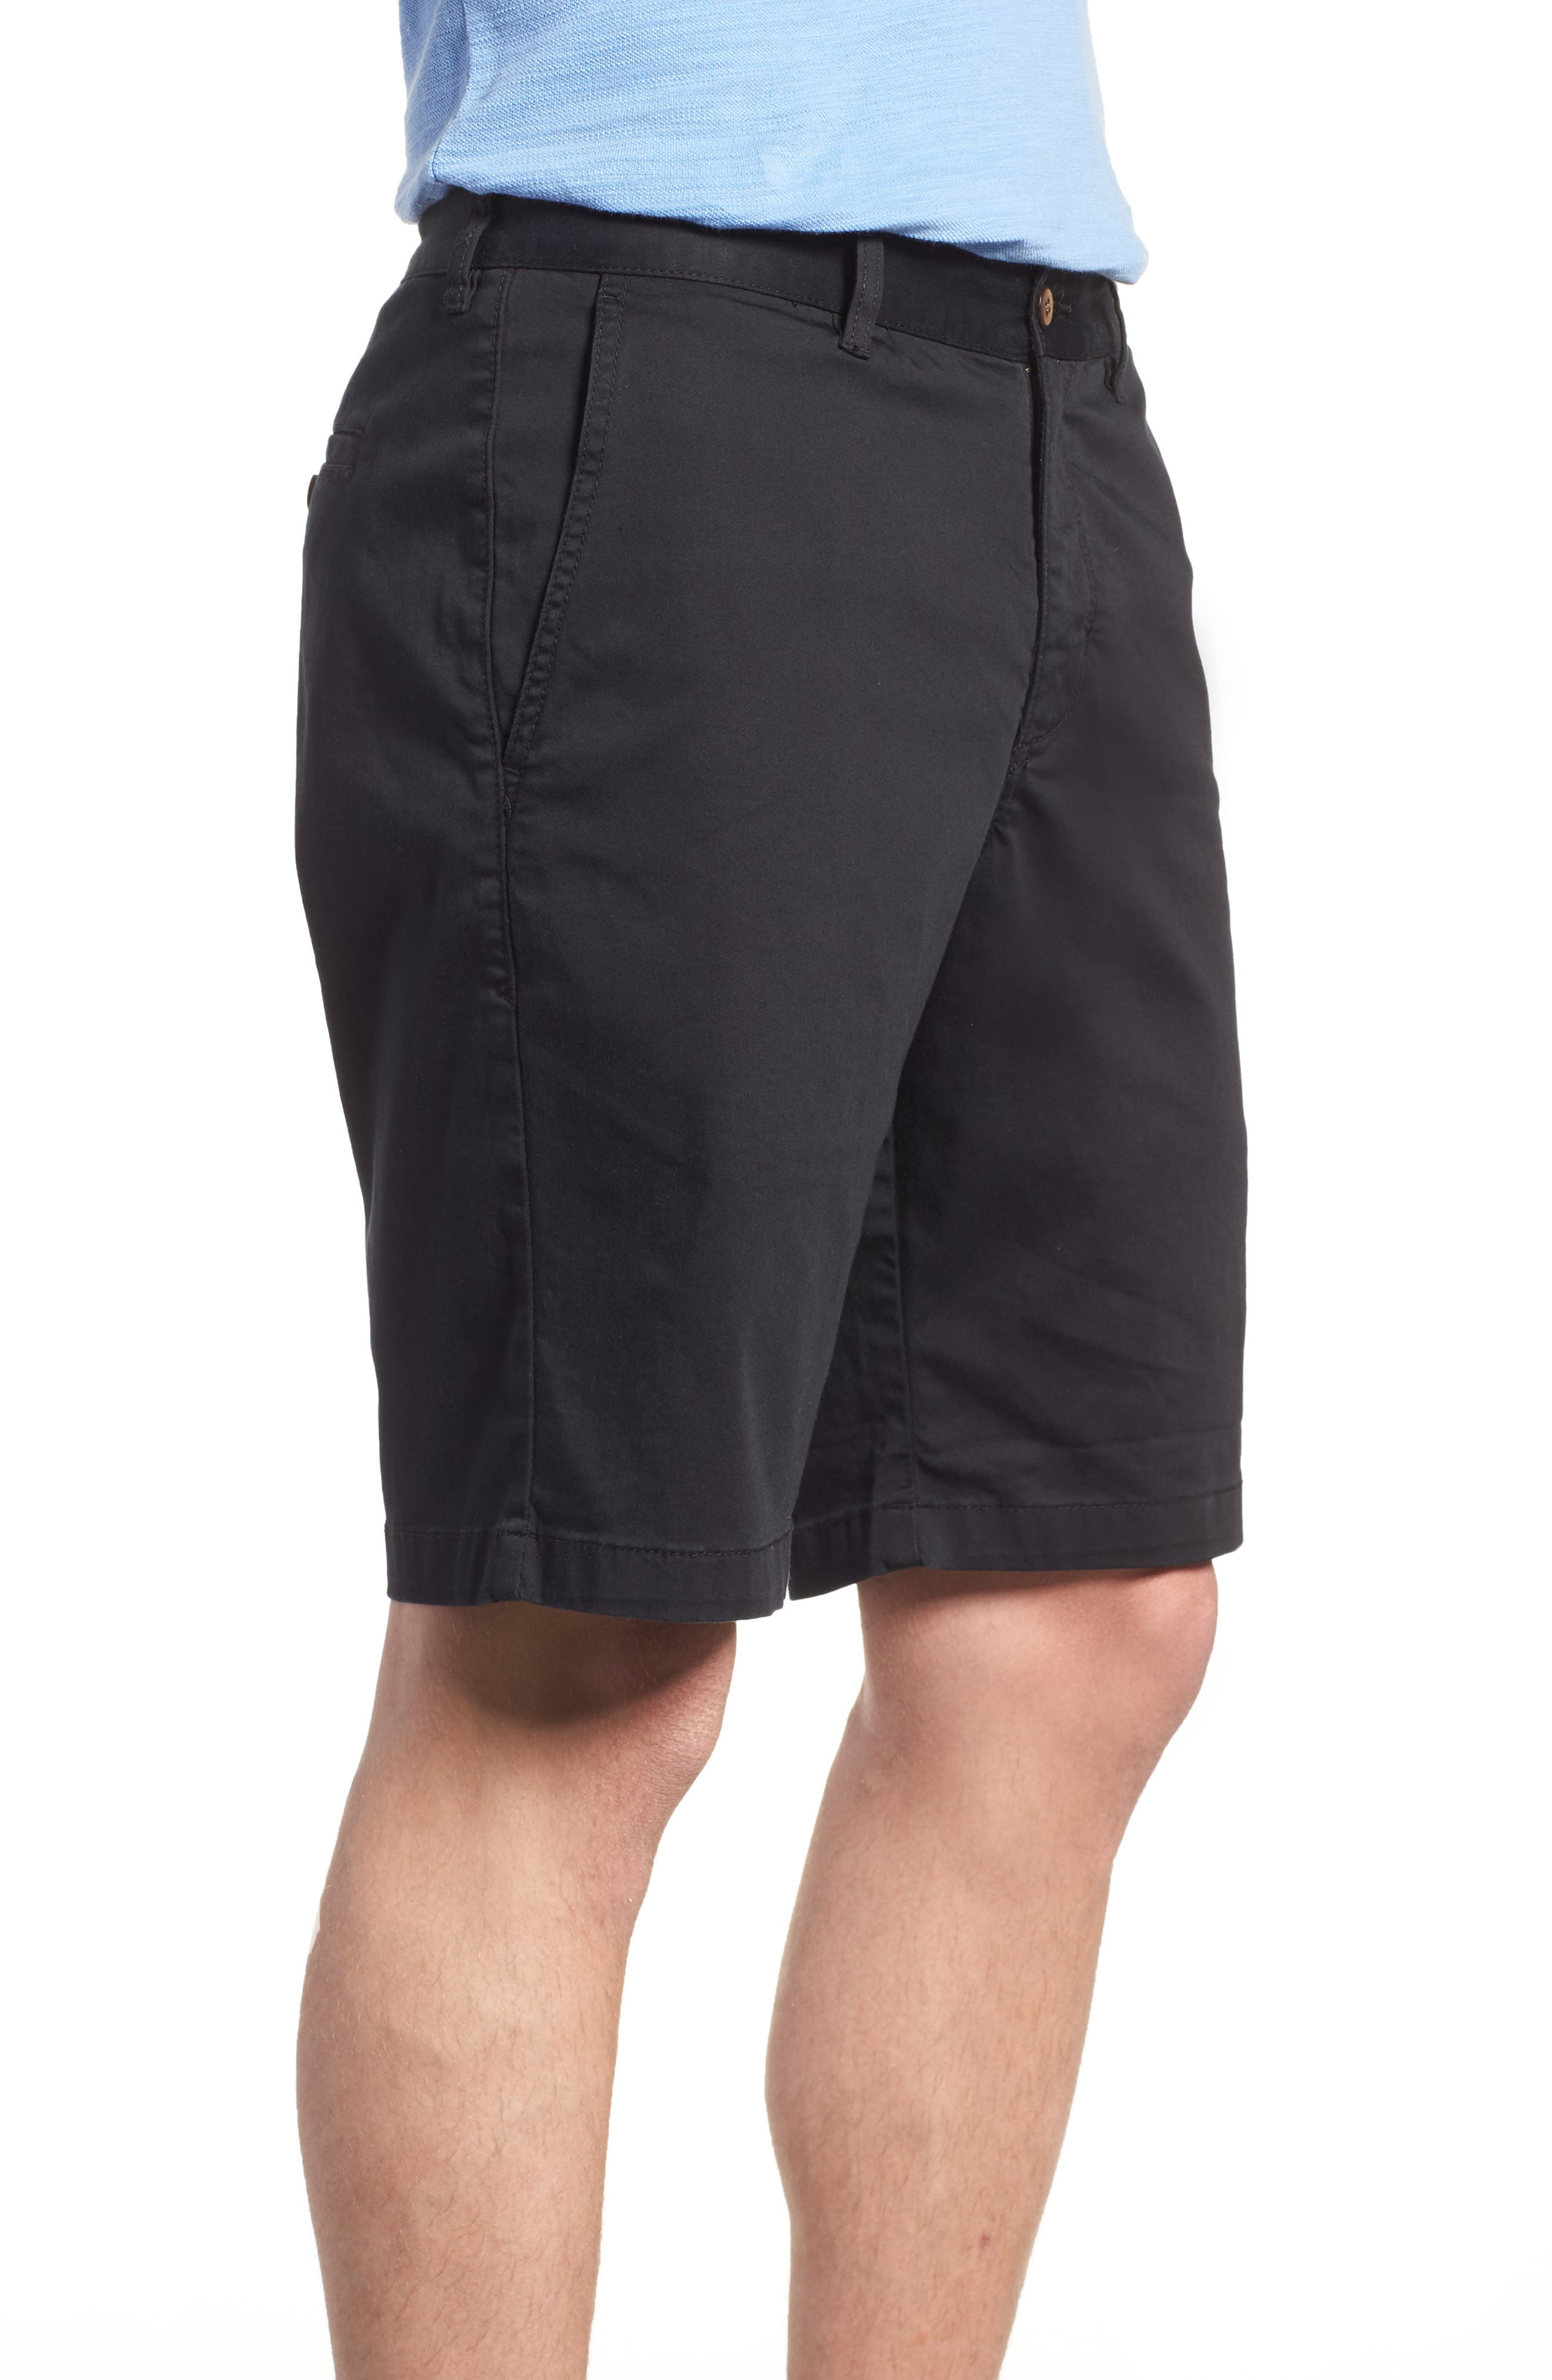 Boracay Chino Shorts,                             Alternate thumbnail 3, color,                             001